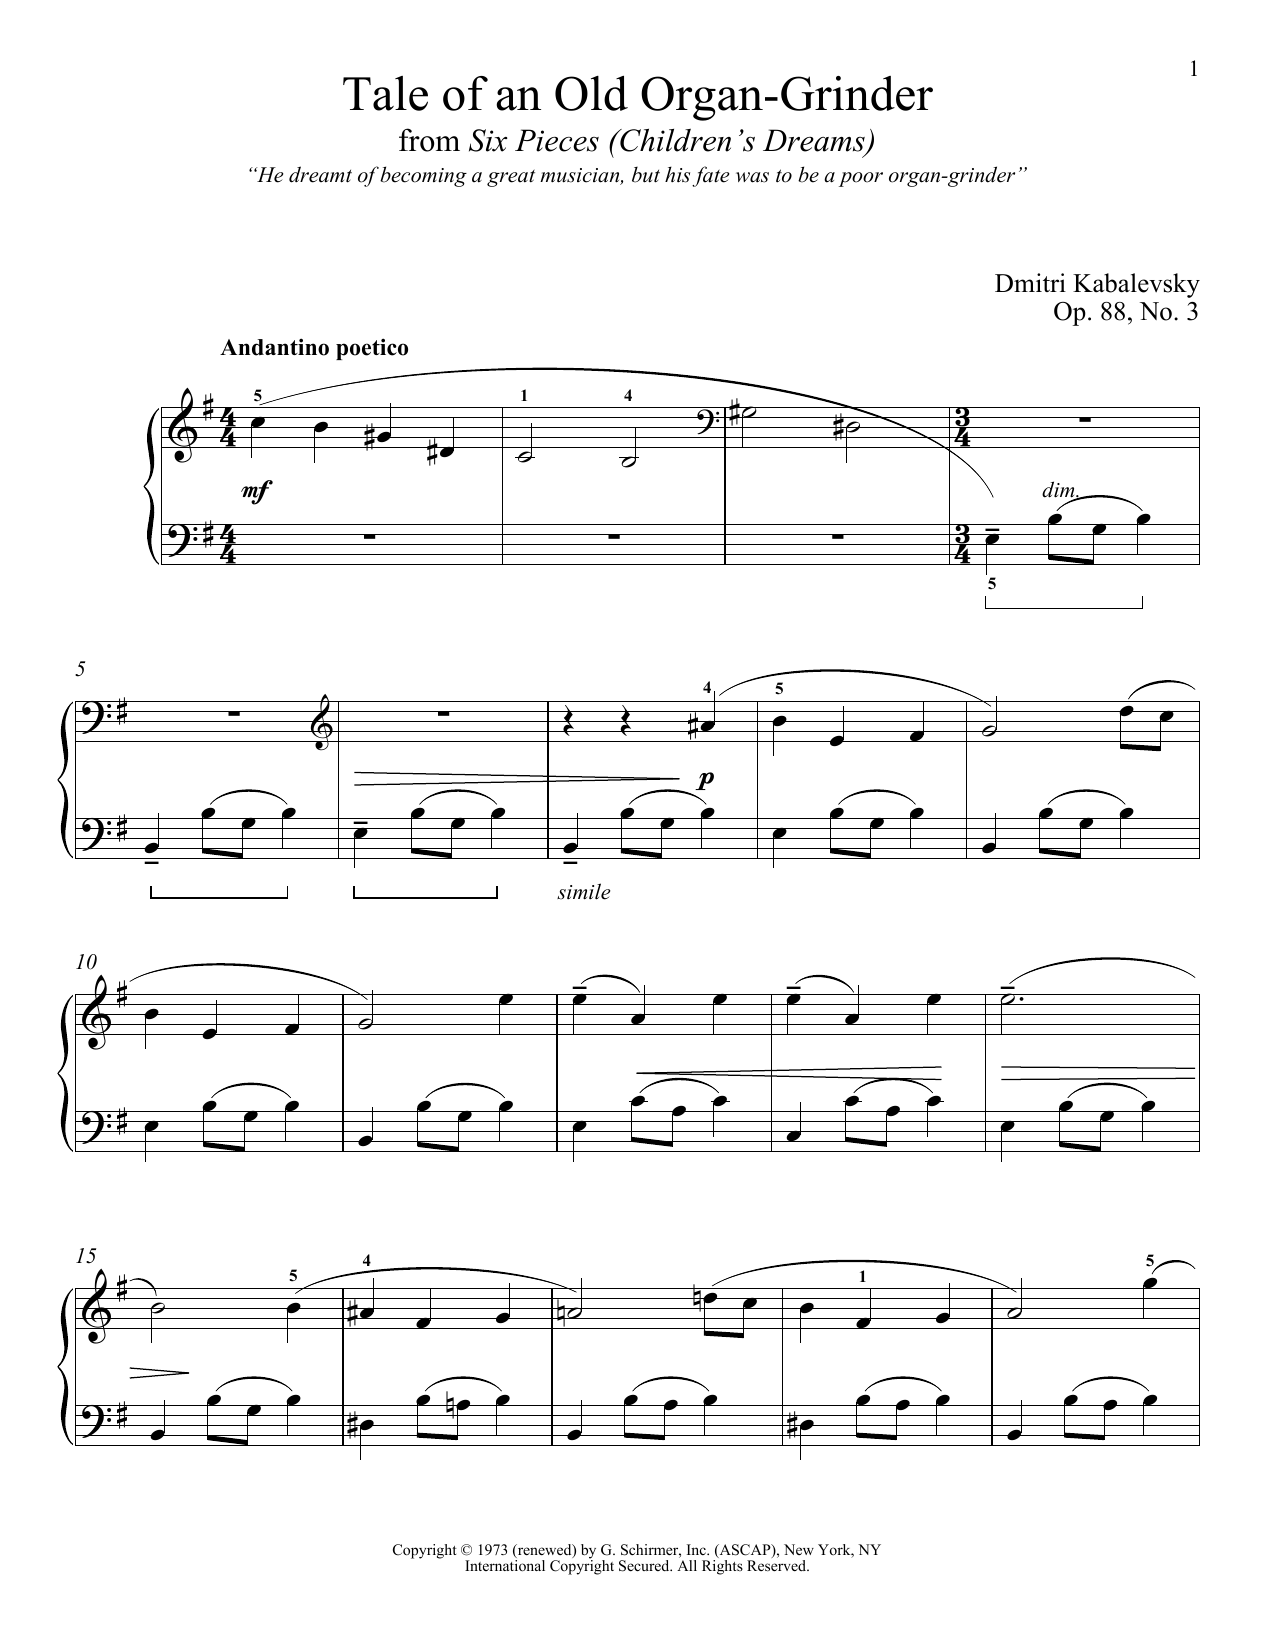 Tale Of An Old Organ-Grinder, Op. 88, No. 3 (Piano Solo)